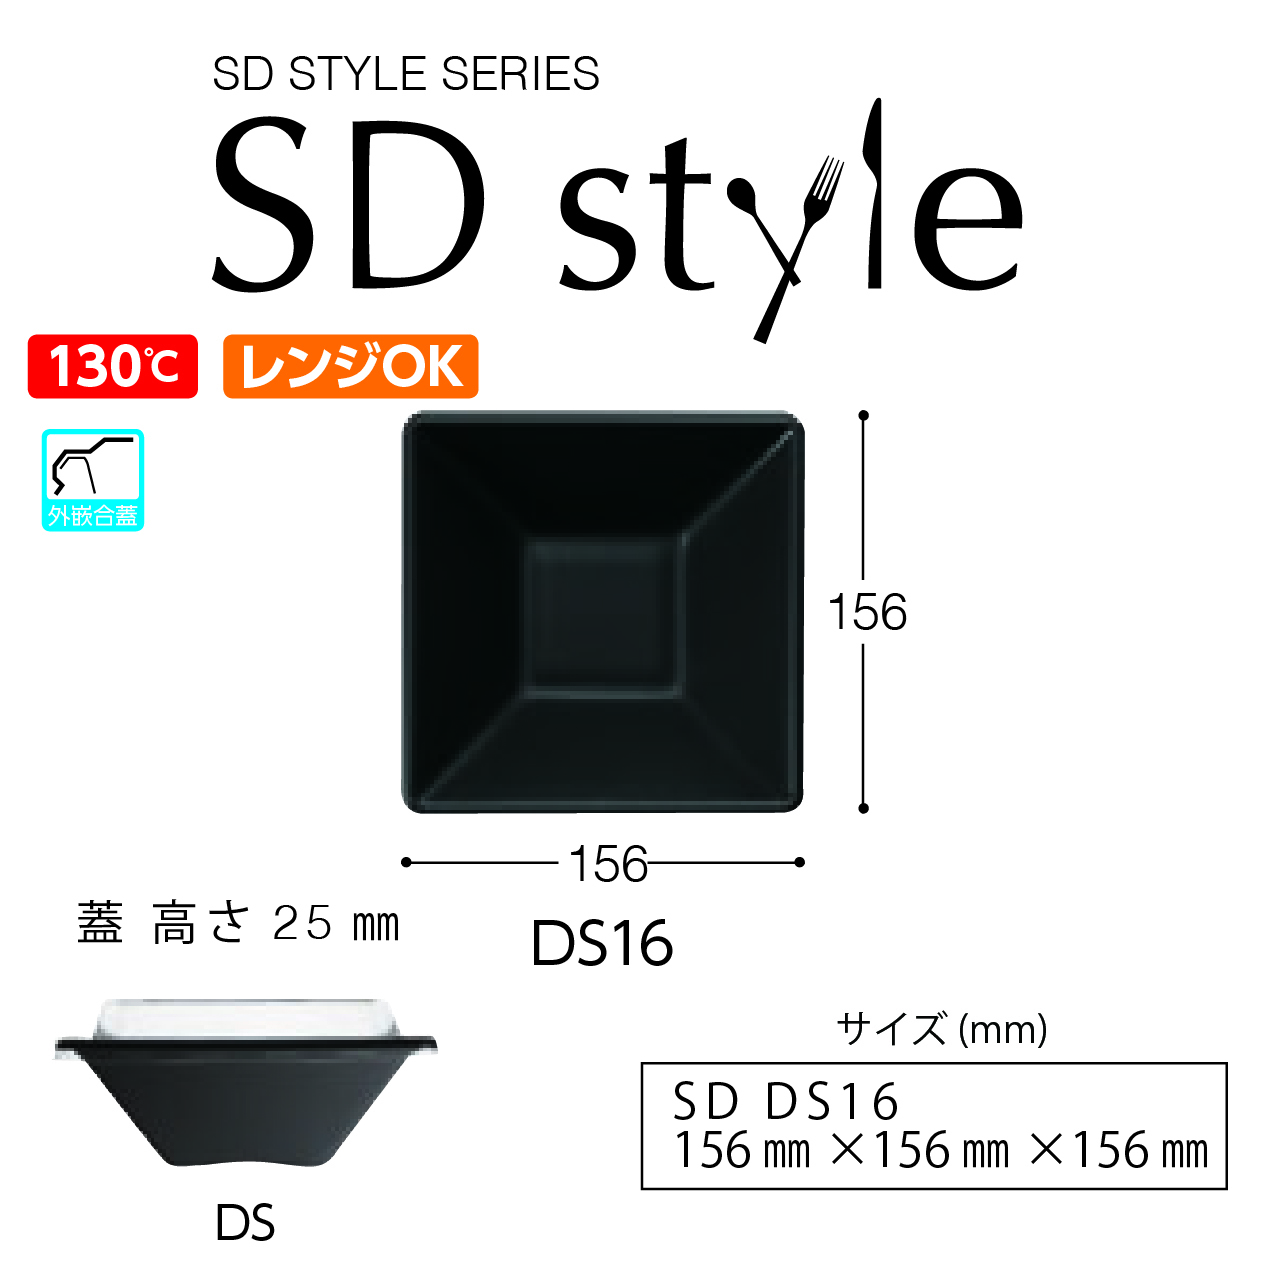 SDstyle DS16